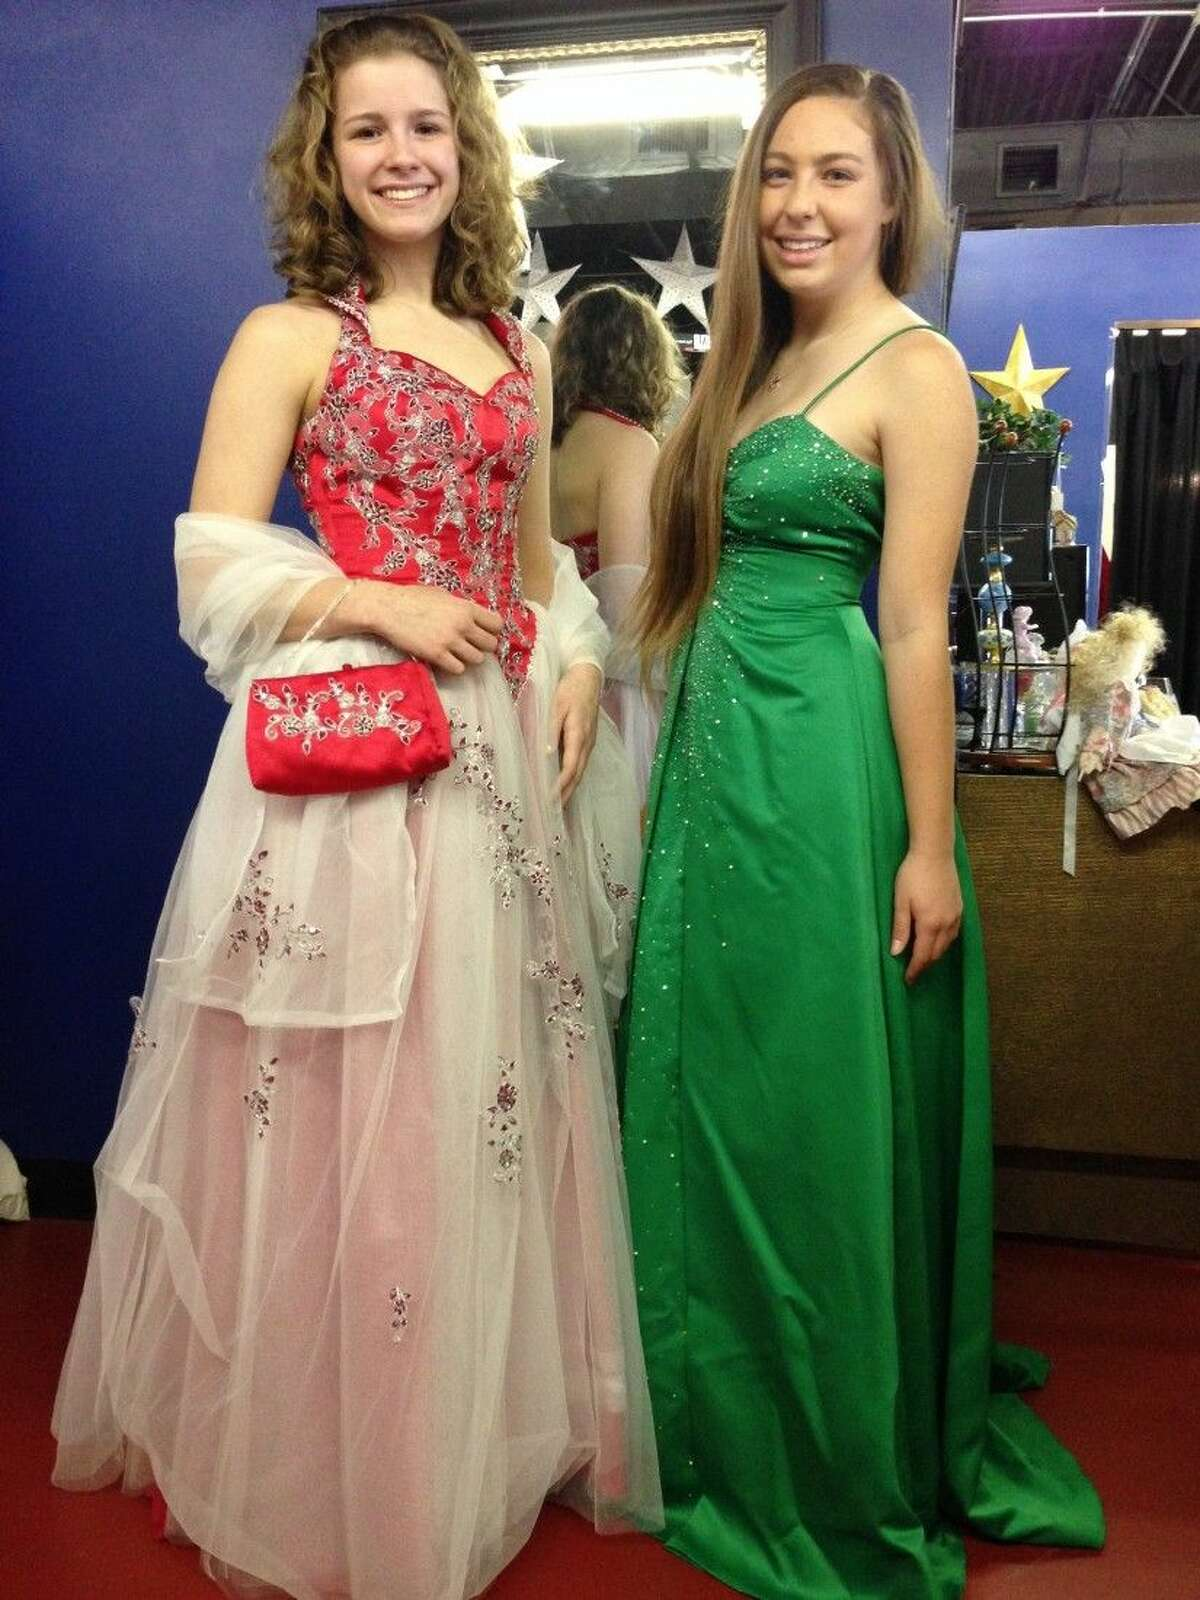 Two lovely Assisteens® model dresses from Operation Cinderella's robust collection of formal evening dresses. Assisteens are an auxiliary to Assistance League made up of over 200 local high school students.